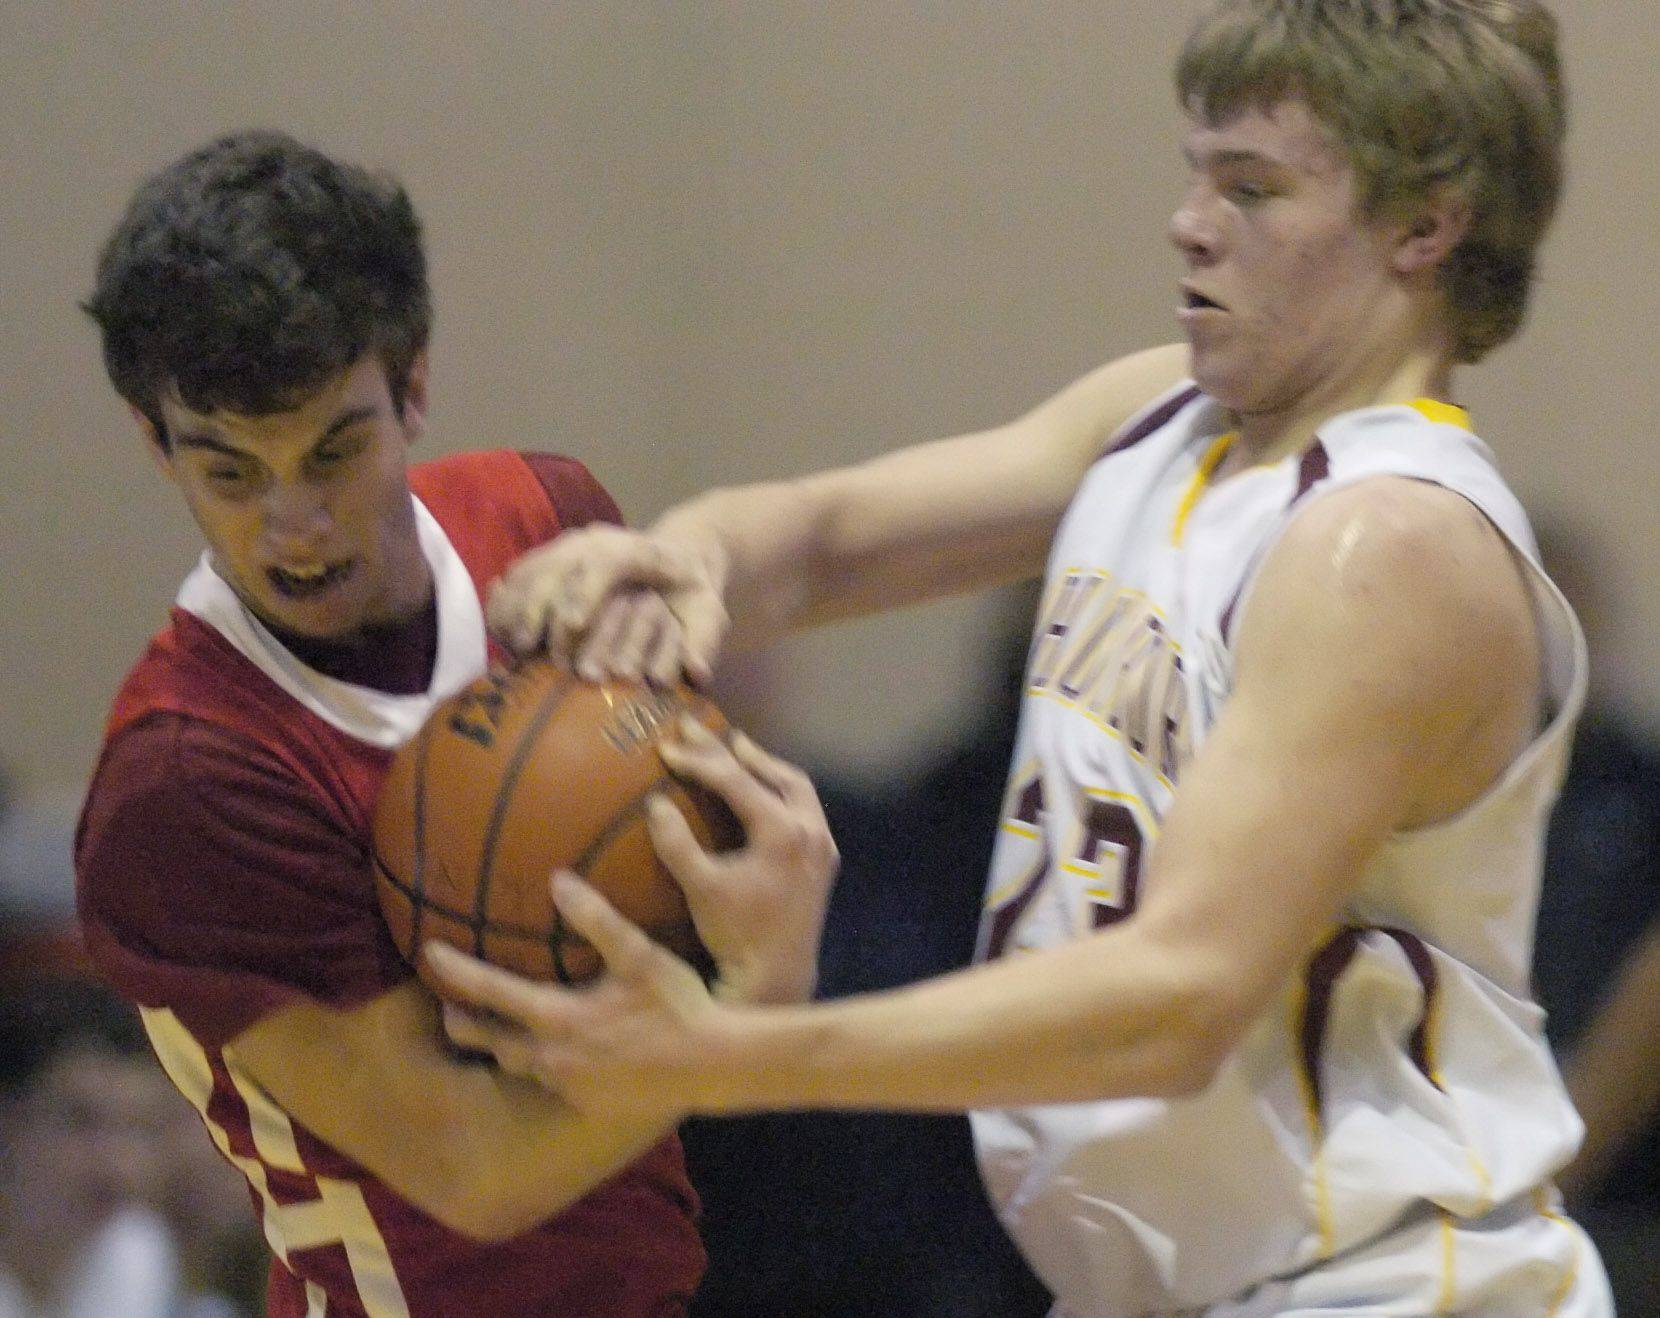 Schaumburg's Kyle Bolger, right, tries to grab the ball from Niles West's Nathan Sagett.